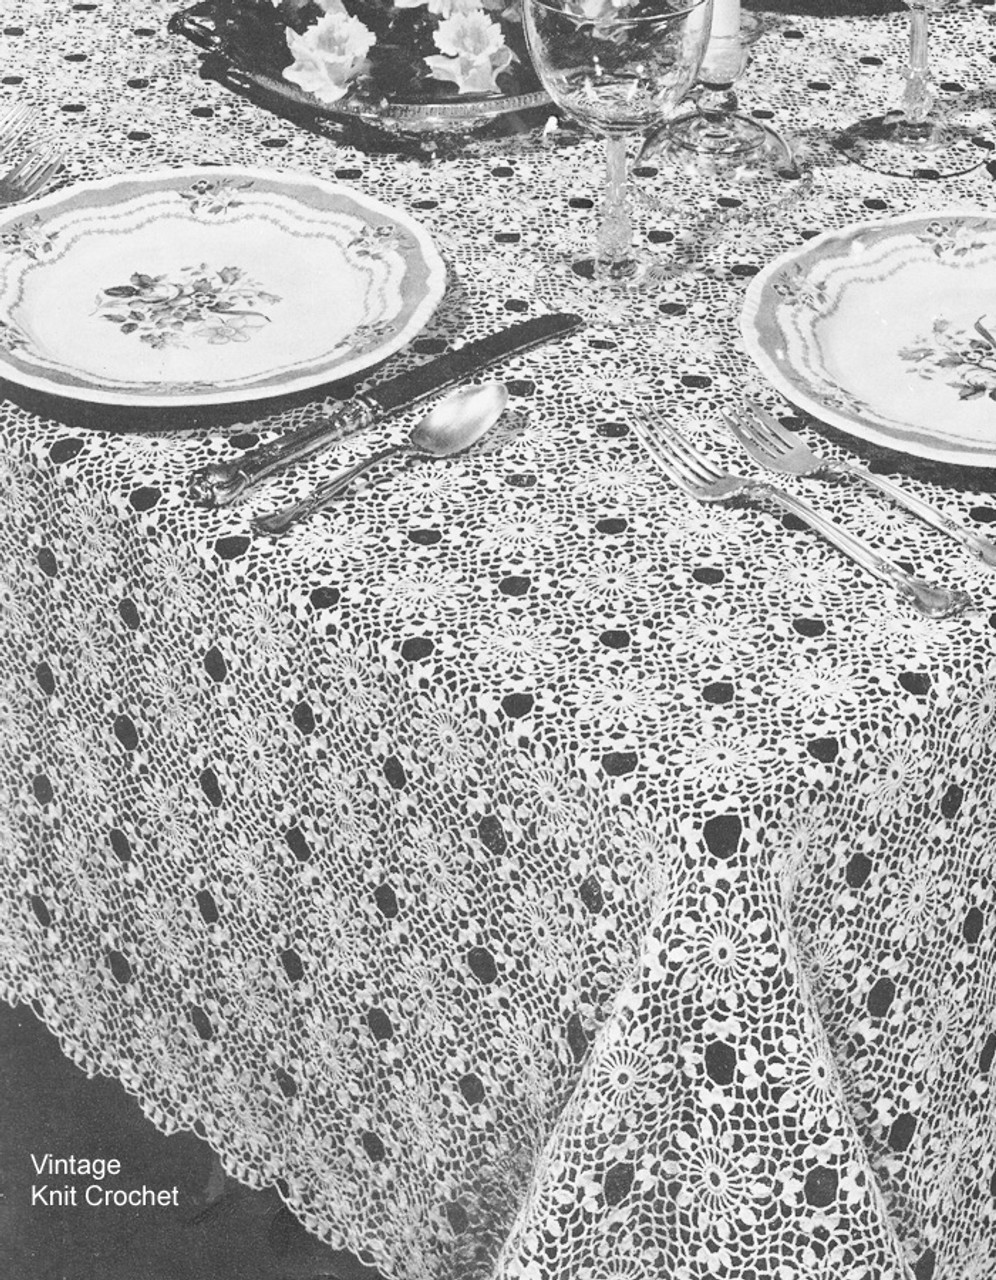 Vintage crochet Tablecloth Pattern, Cluster Stitch Square